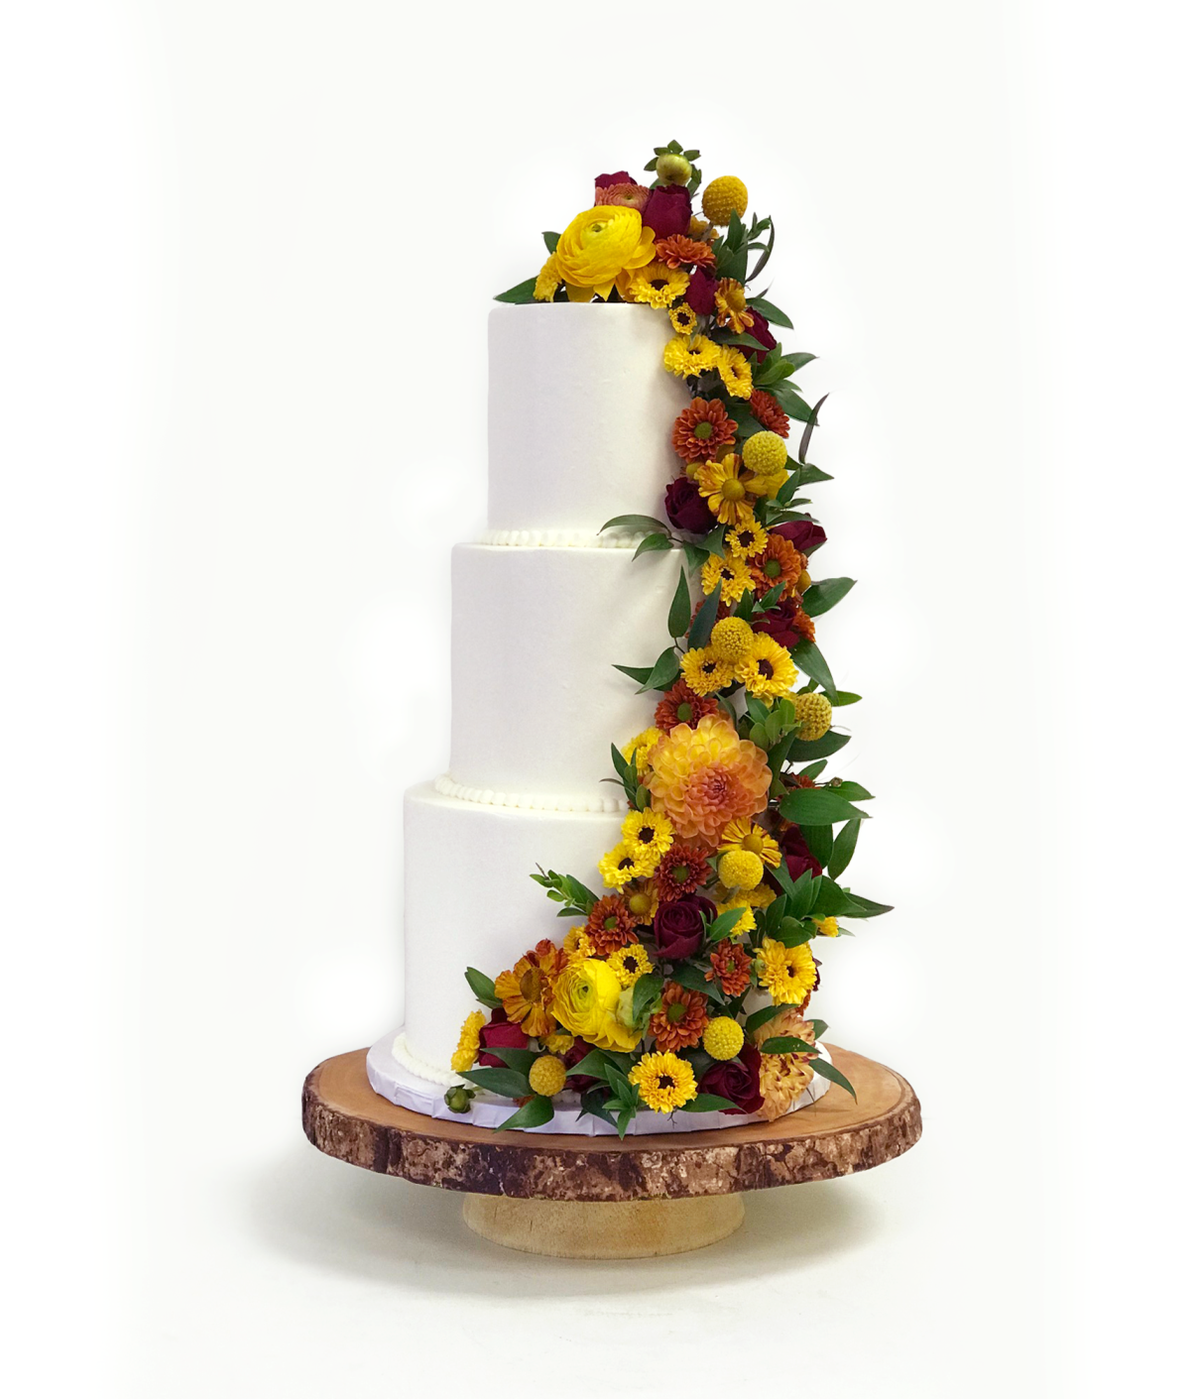 Whippt Desserts - Wedding Cake Sept 2018 - Flowers Fleurish